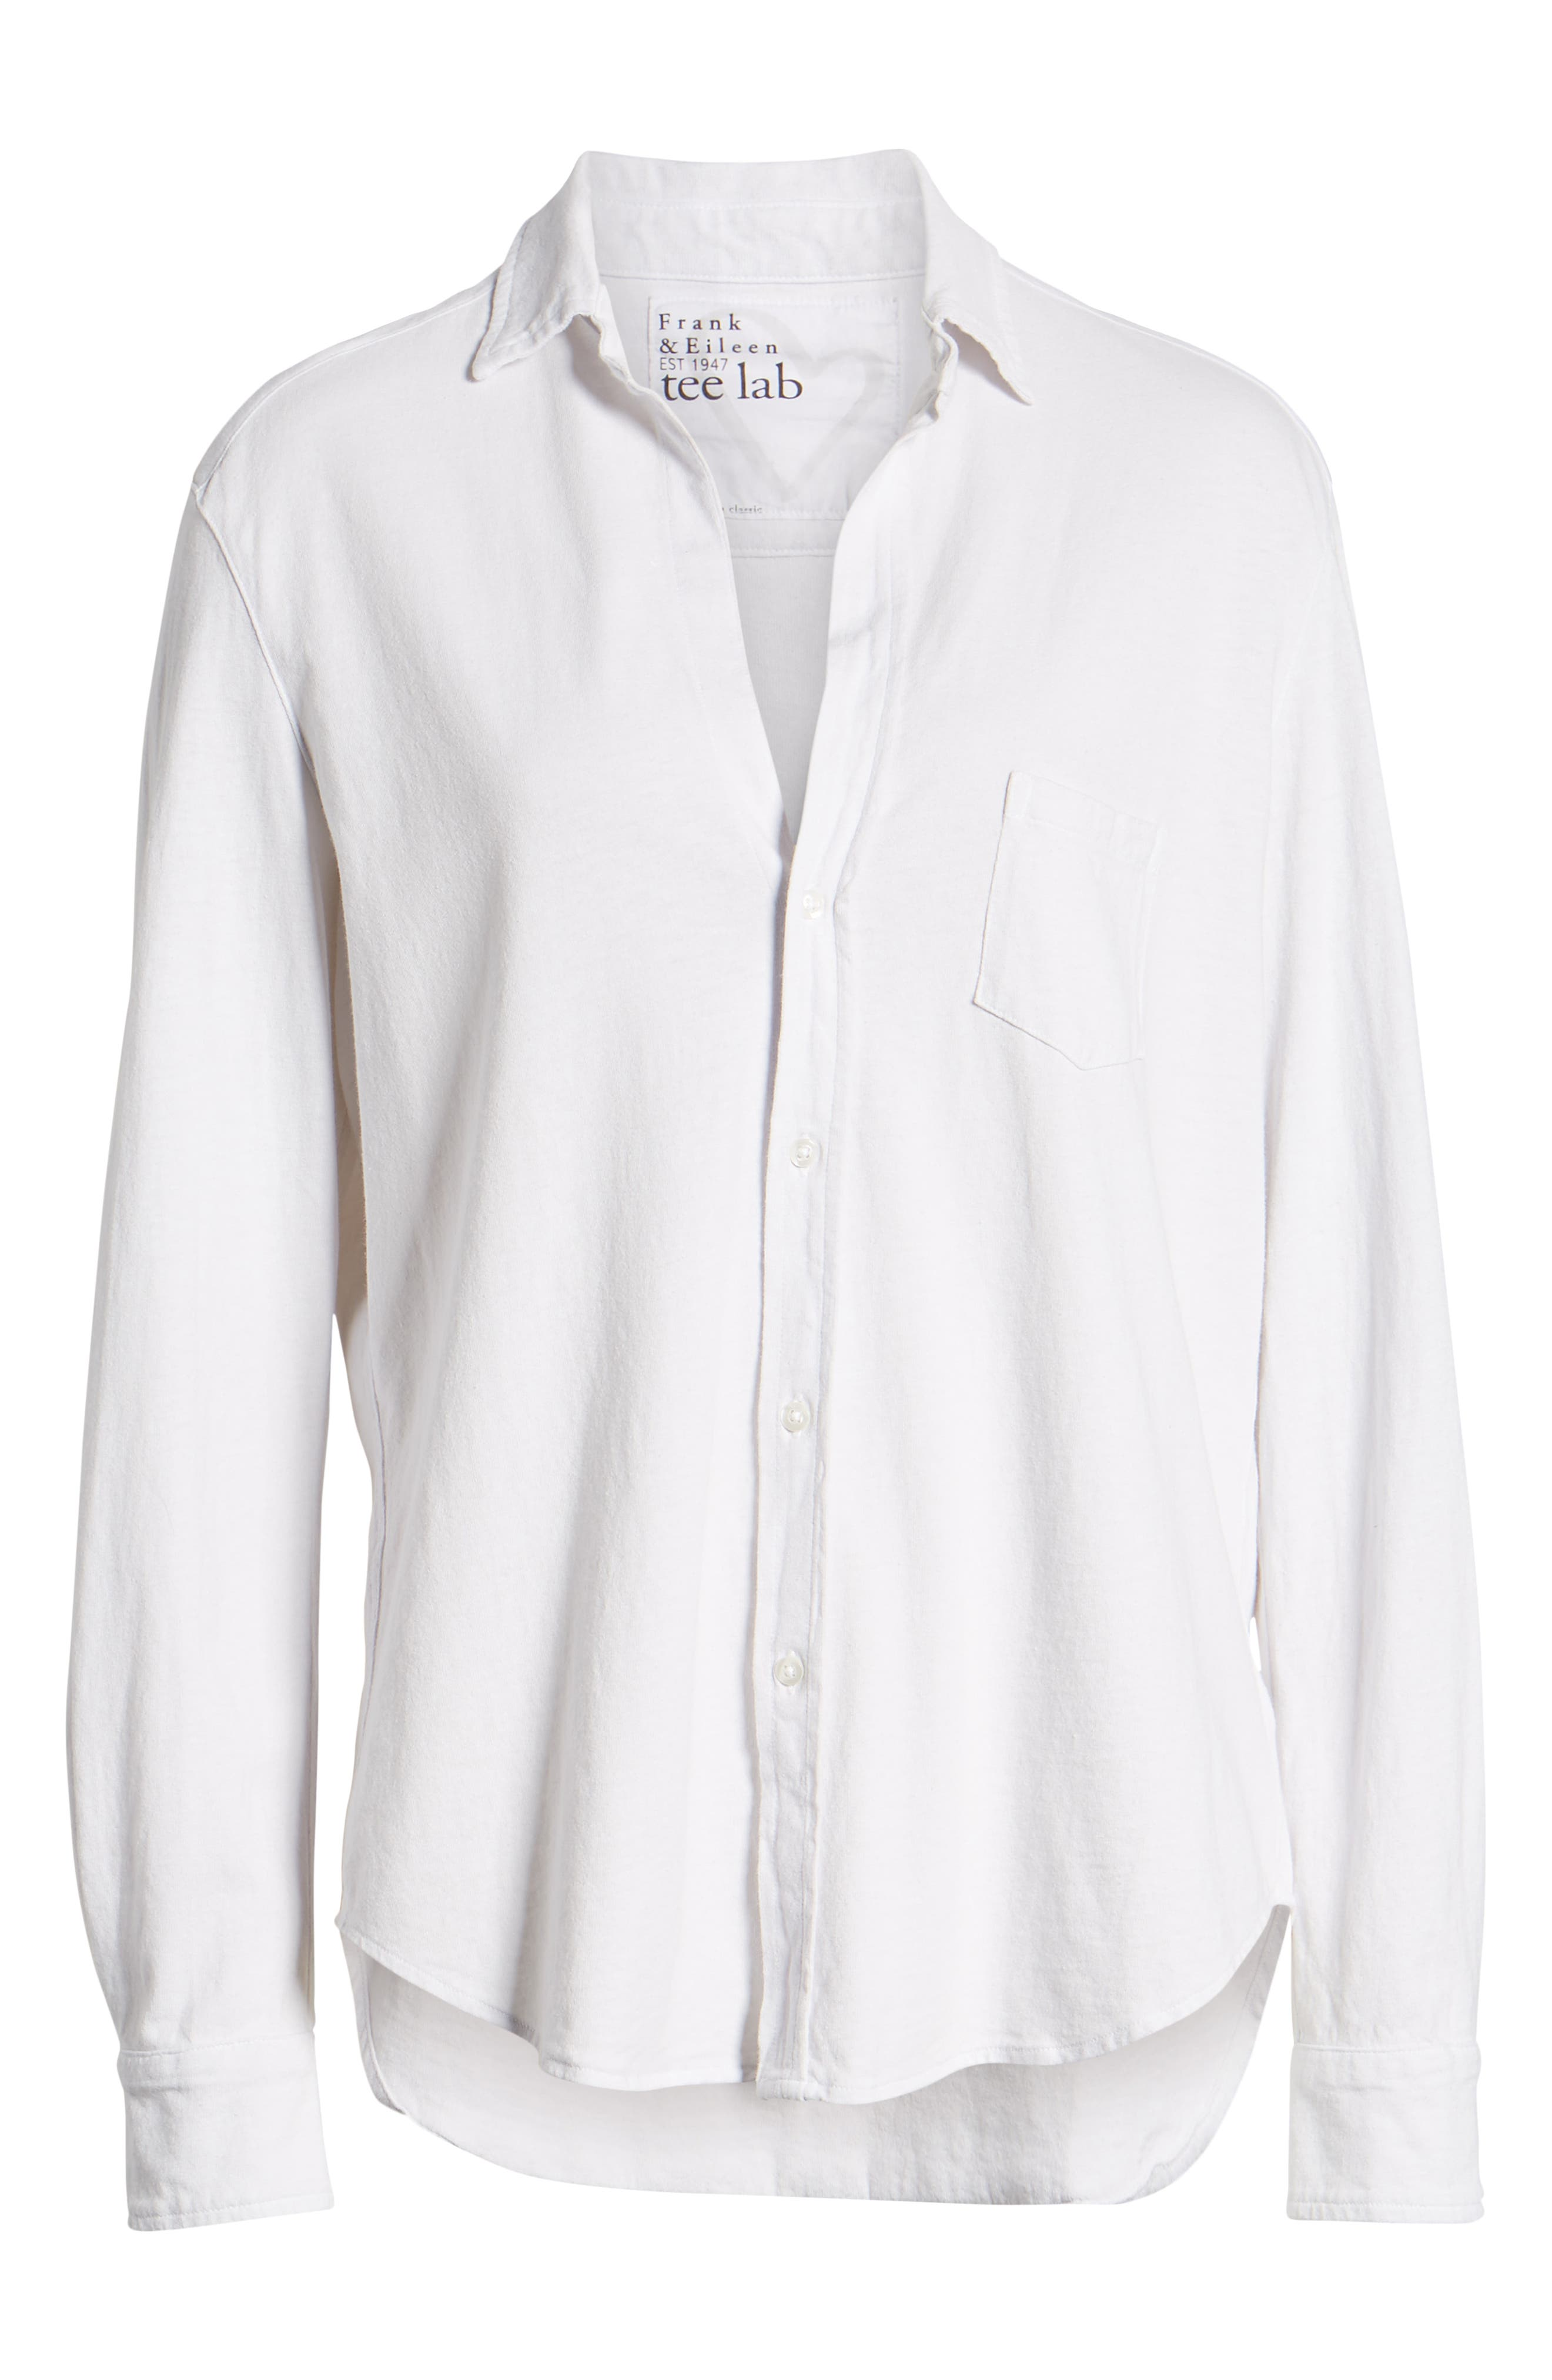 FRANK & EILEEN TEE LAB,                             Eileen Jersey Button Front Shirt,                             Alternate thumbnail 7, color,                             DIRTY WHITE